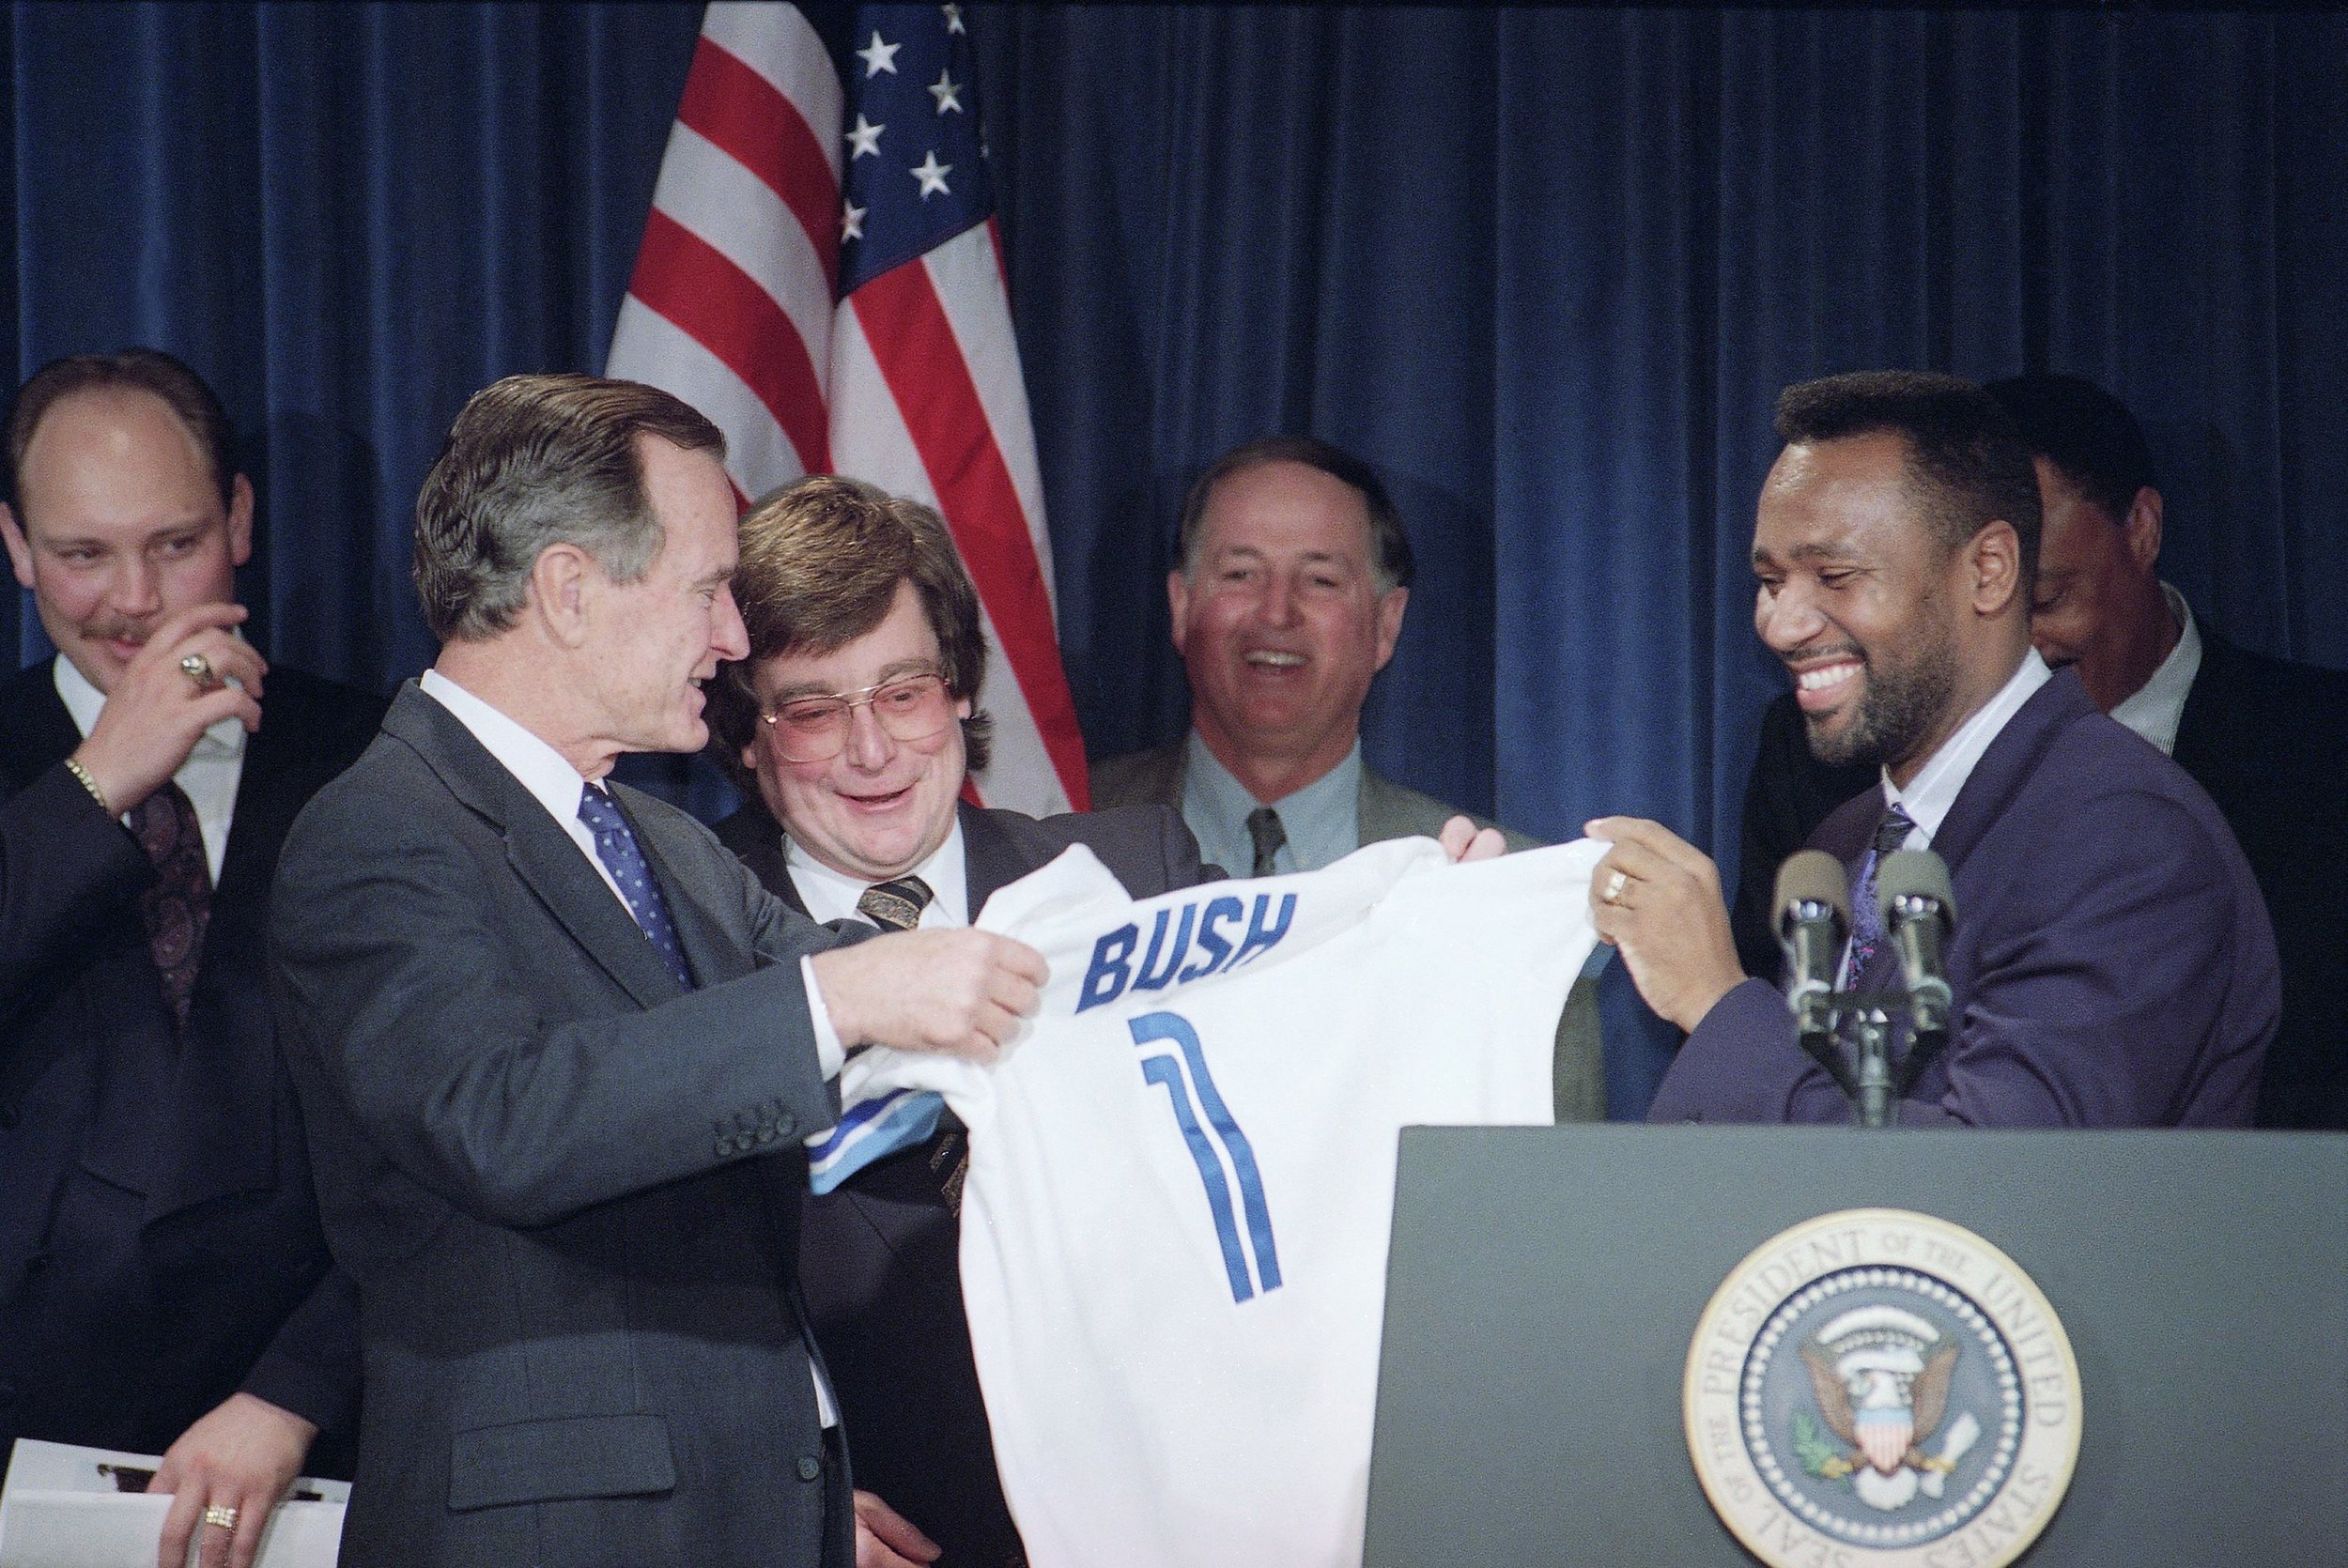 President George H. W. Bush, left, accepts a Toronto Blue Jays Jersey from Jays Joe Carter, right, during a ceremony honoring the World Serres champs at the White House, Dec. 16, 1992, Washington, D.C. Blue Jays RP Duane Ward, from left, President Paul Beston (Welland, Ont.),, General Manager Pat Gillick and manager Cito Gaston look on. Phhoto: Ron Edmonds/AP Photo.